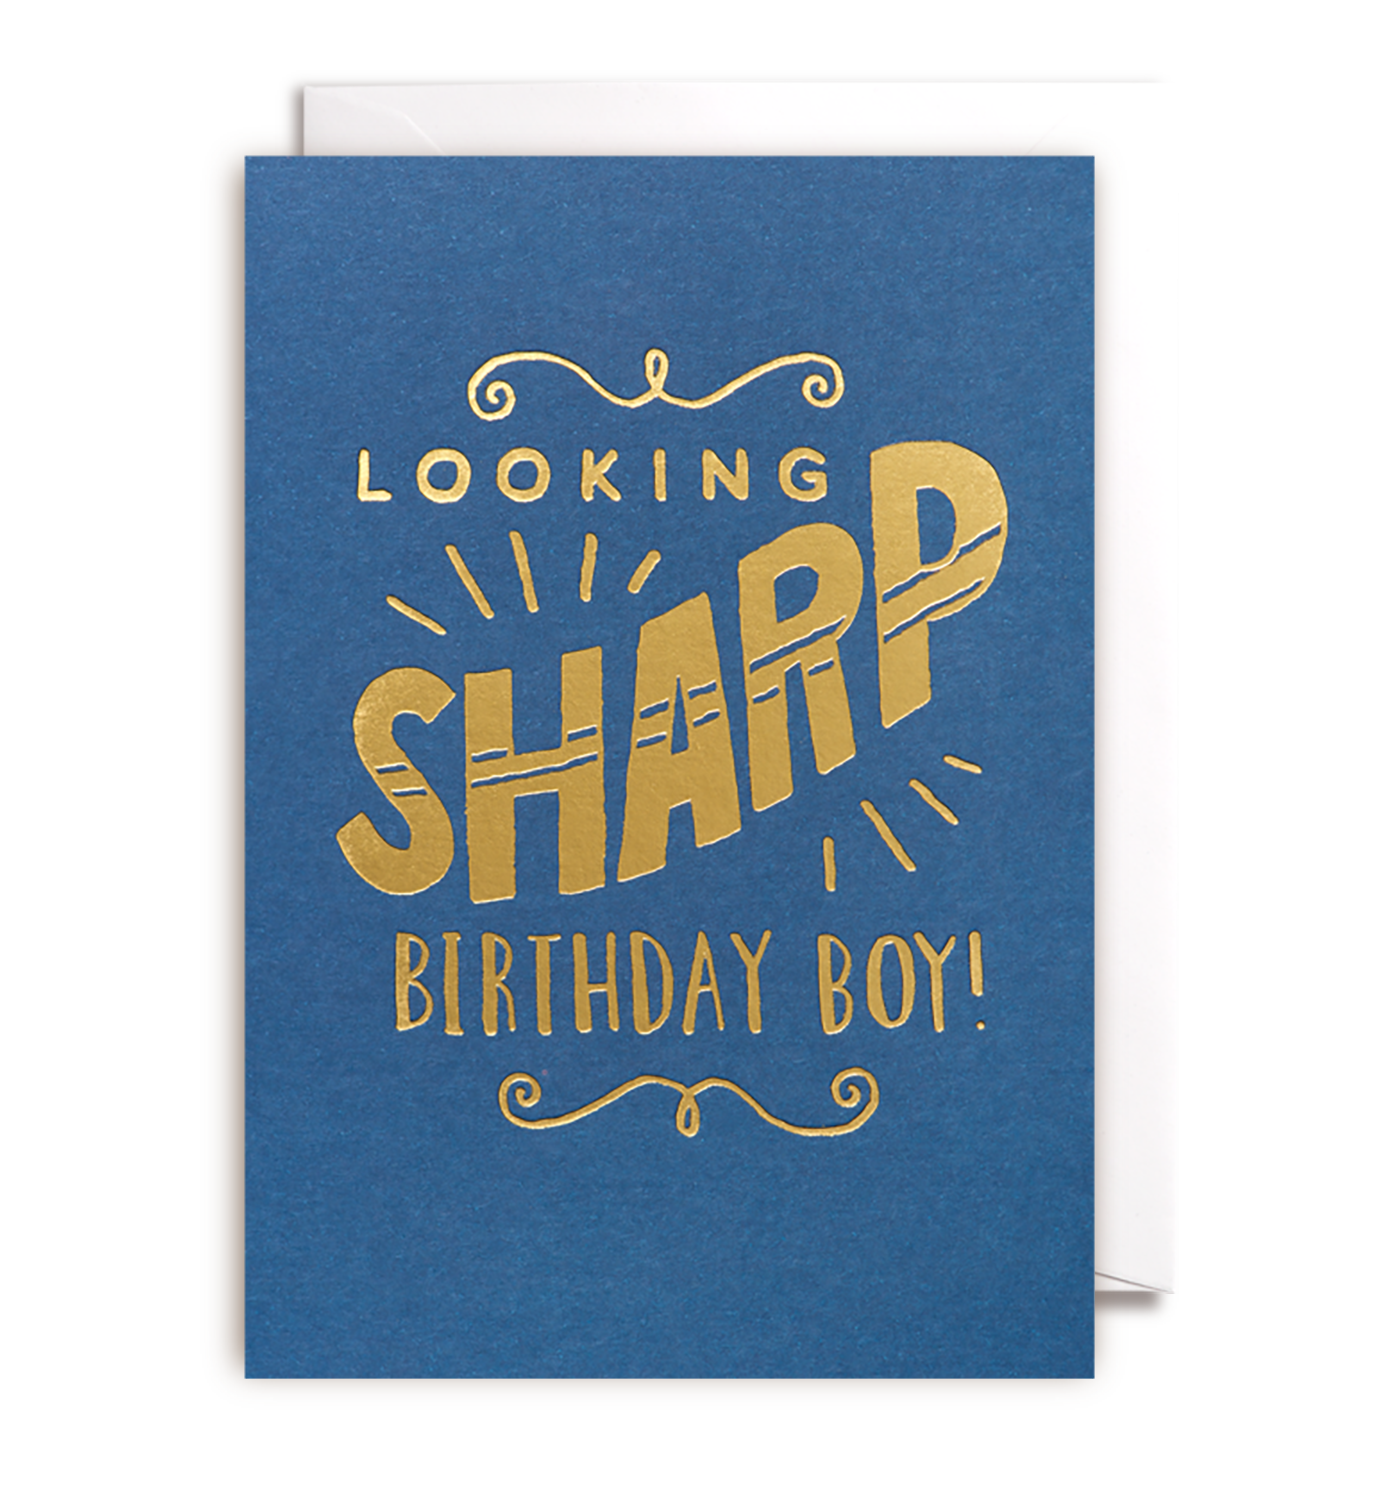 Looking Sharp Birthday Boy Card Birthday Boys Special Person And